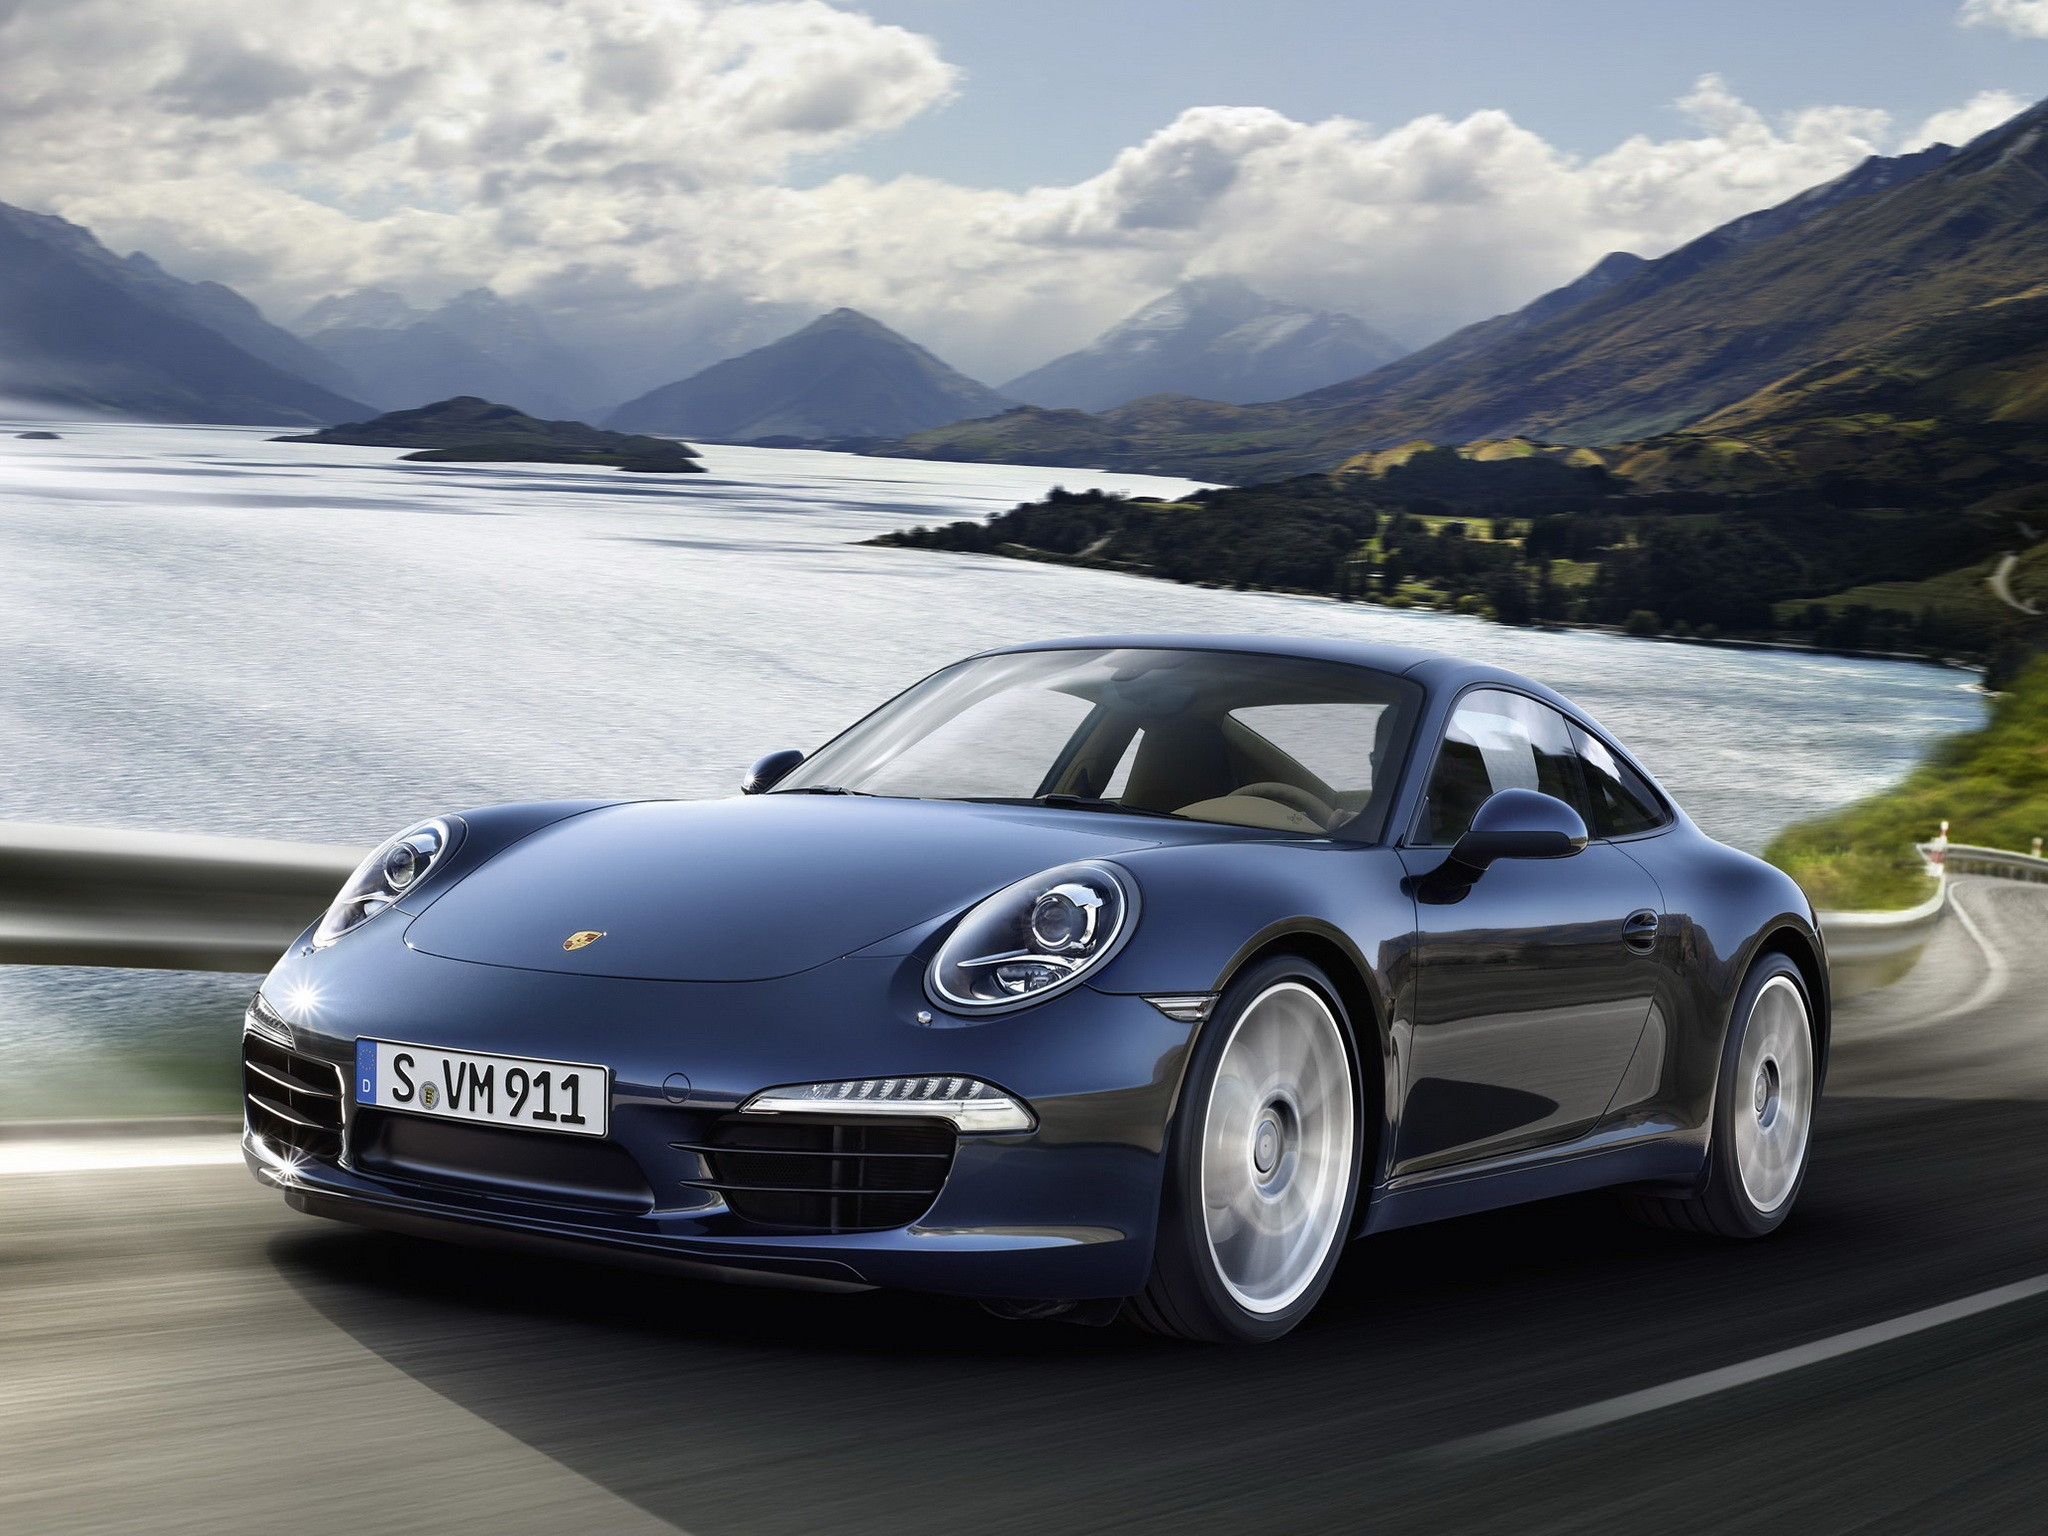 porsche 911 carrera s 991 specs photos 2012 2013. Black Bedroom Furniture Sets. Home Design Ideas